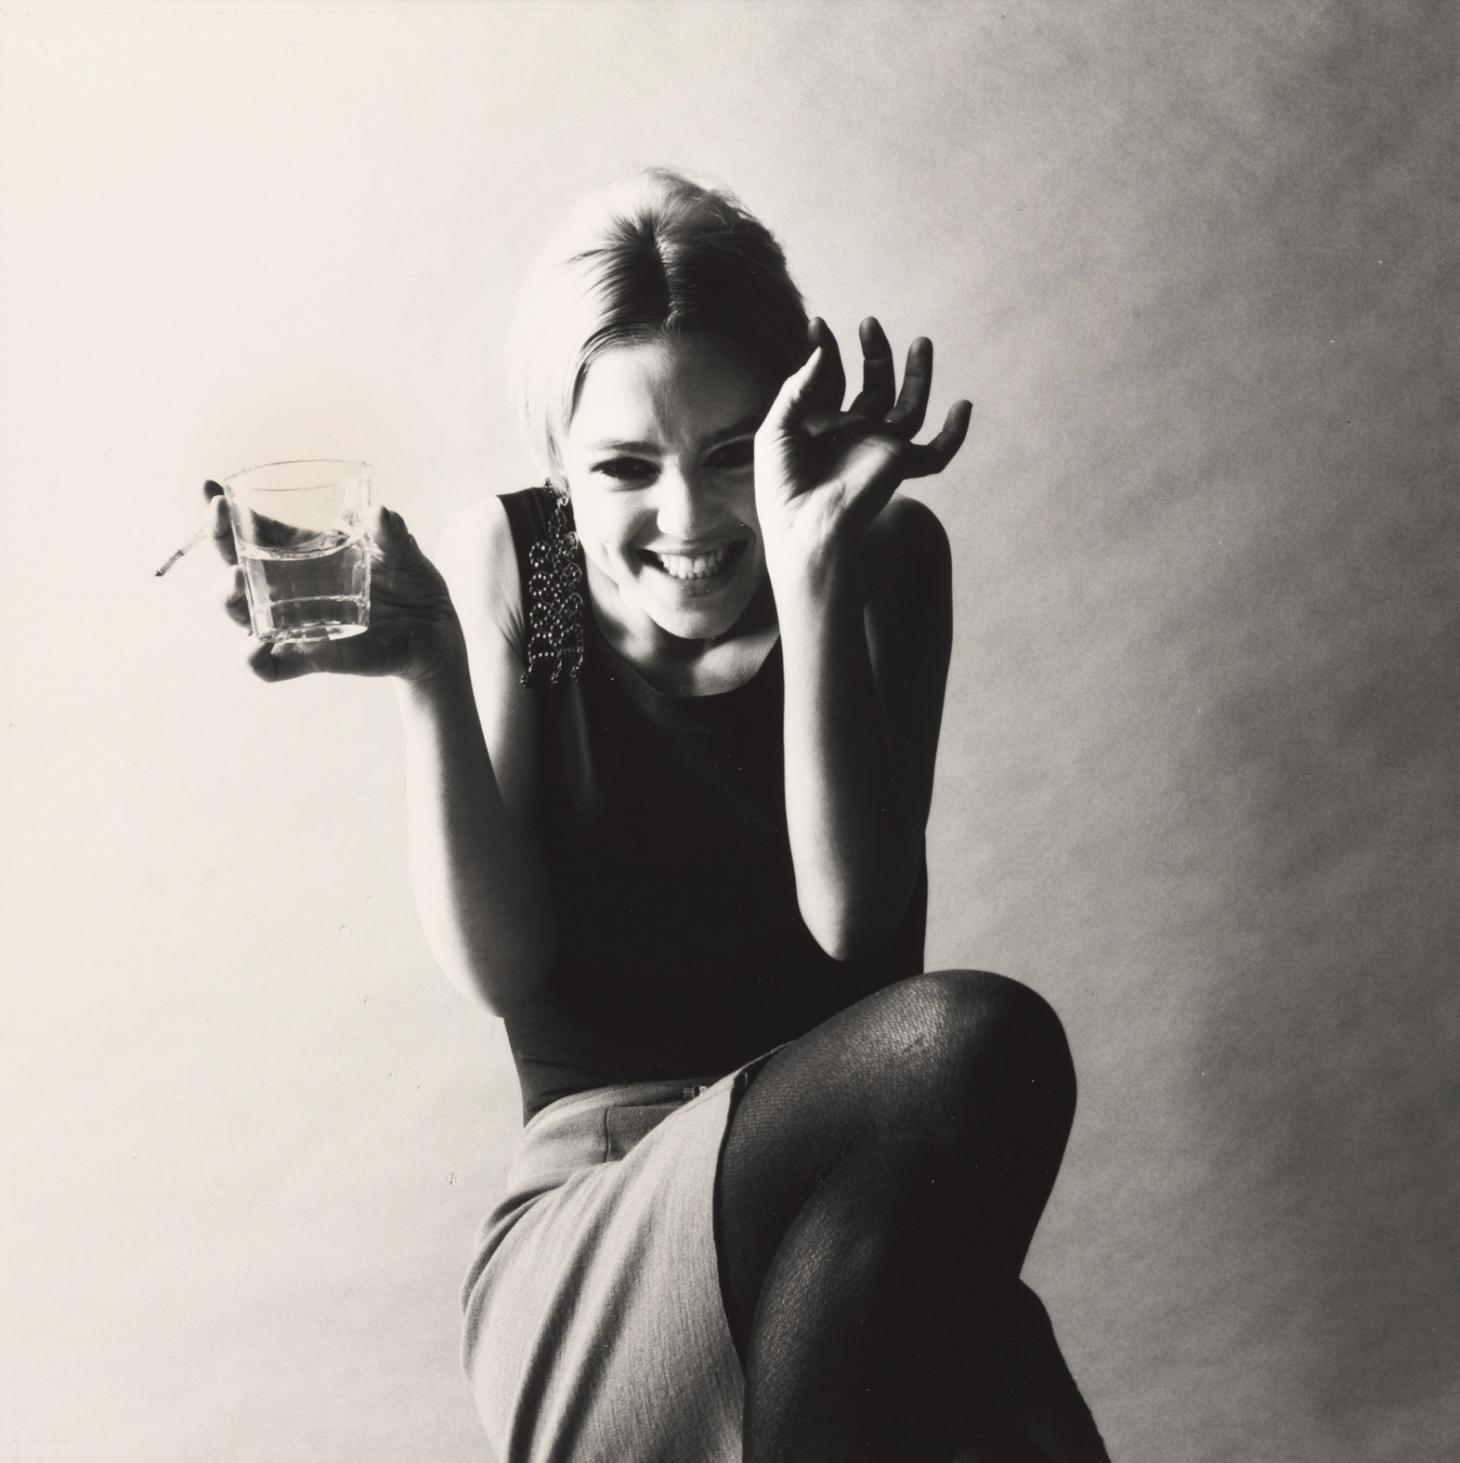 Jerry Schatzberg, Edie, courtesy of Peter Fetterman Gllery